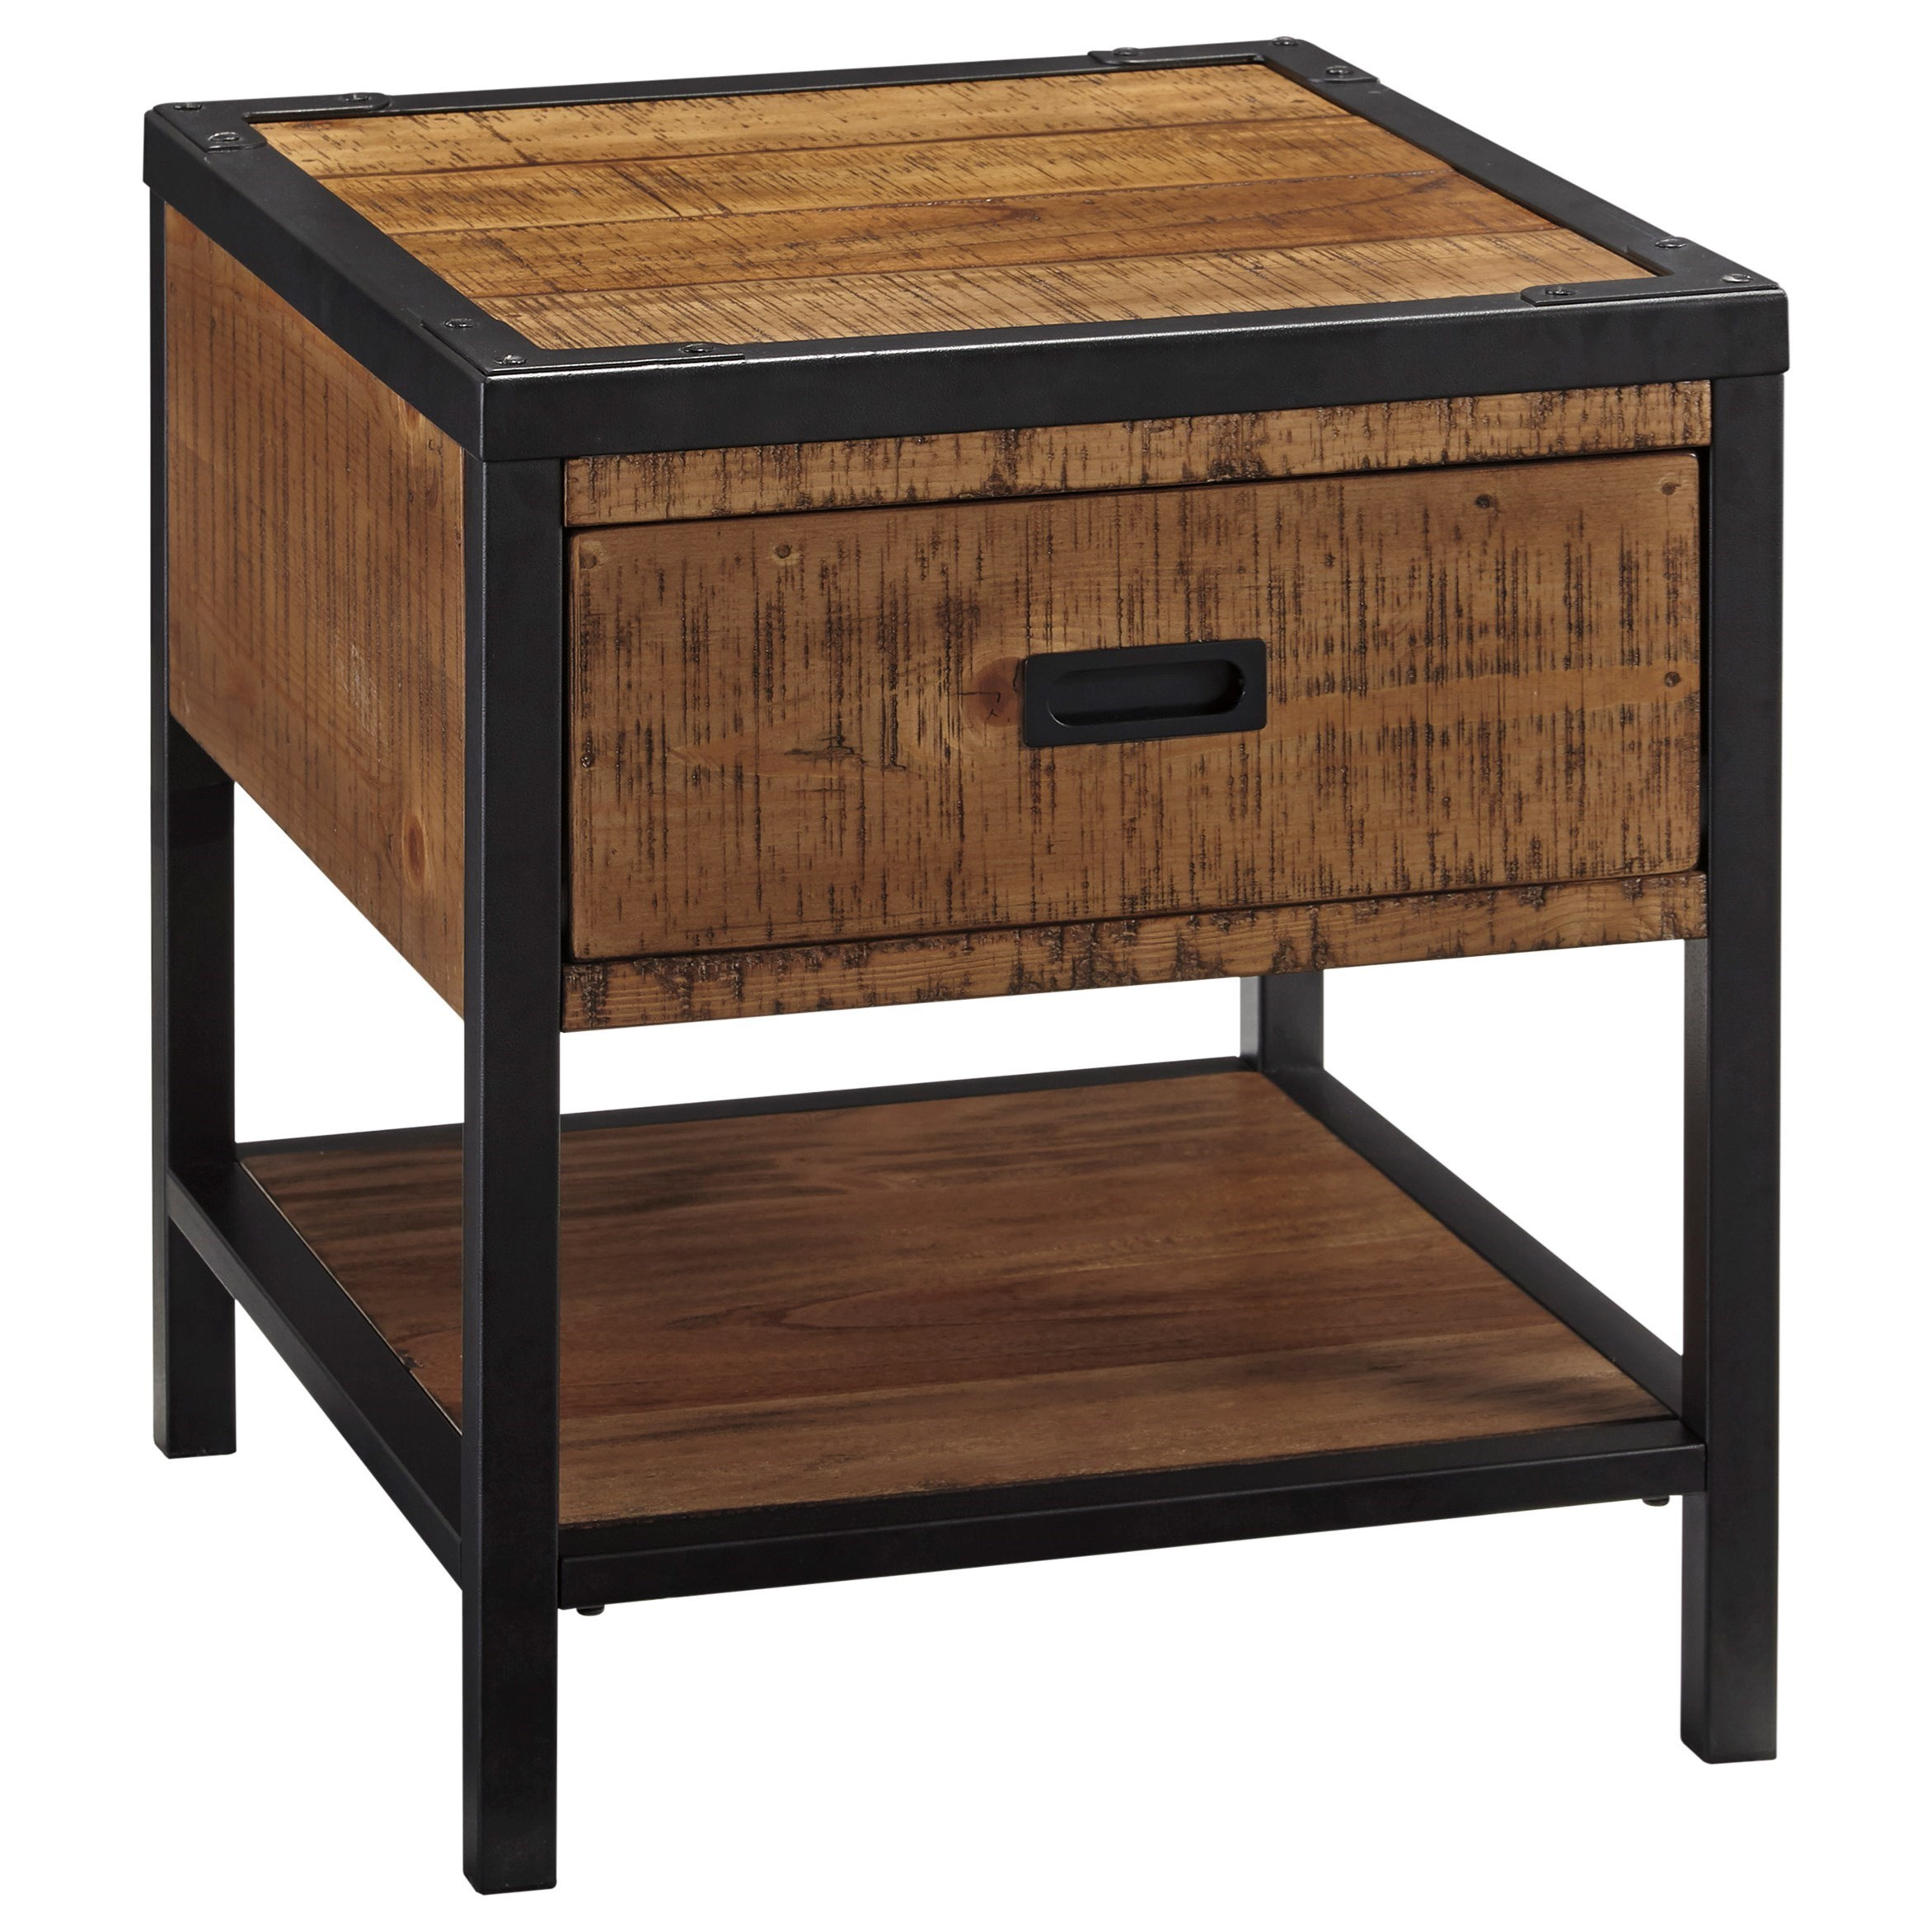 Signature Design by Ashley Kalean Rectangular End Table - Item Number: T817-3